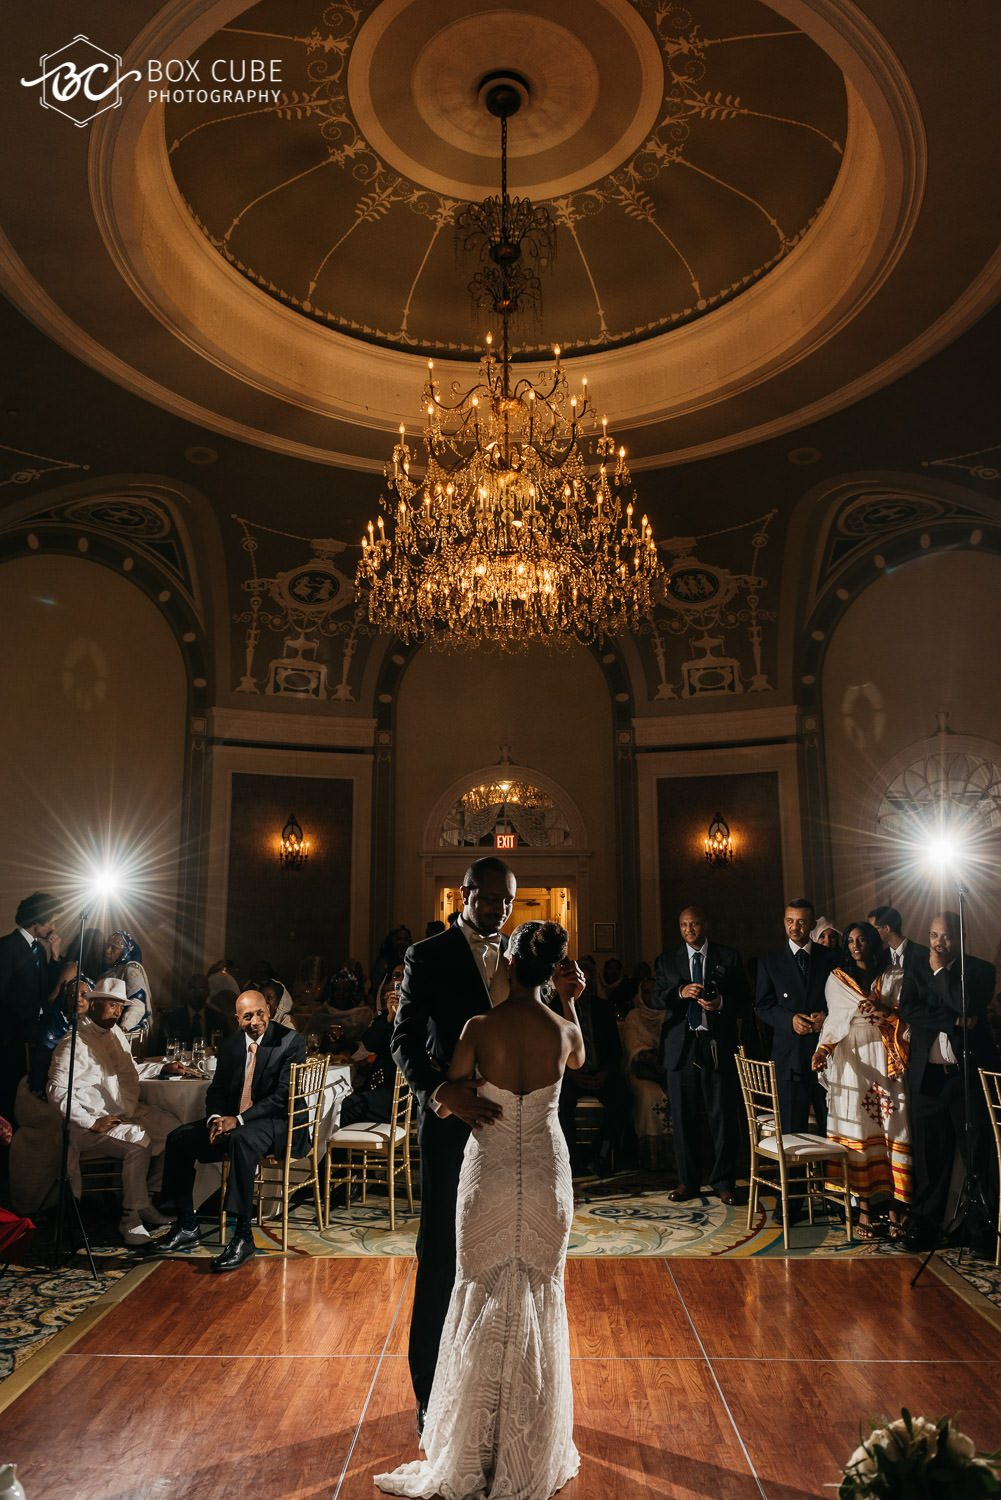 edmonton wedding venue ballroom dance photo